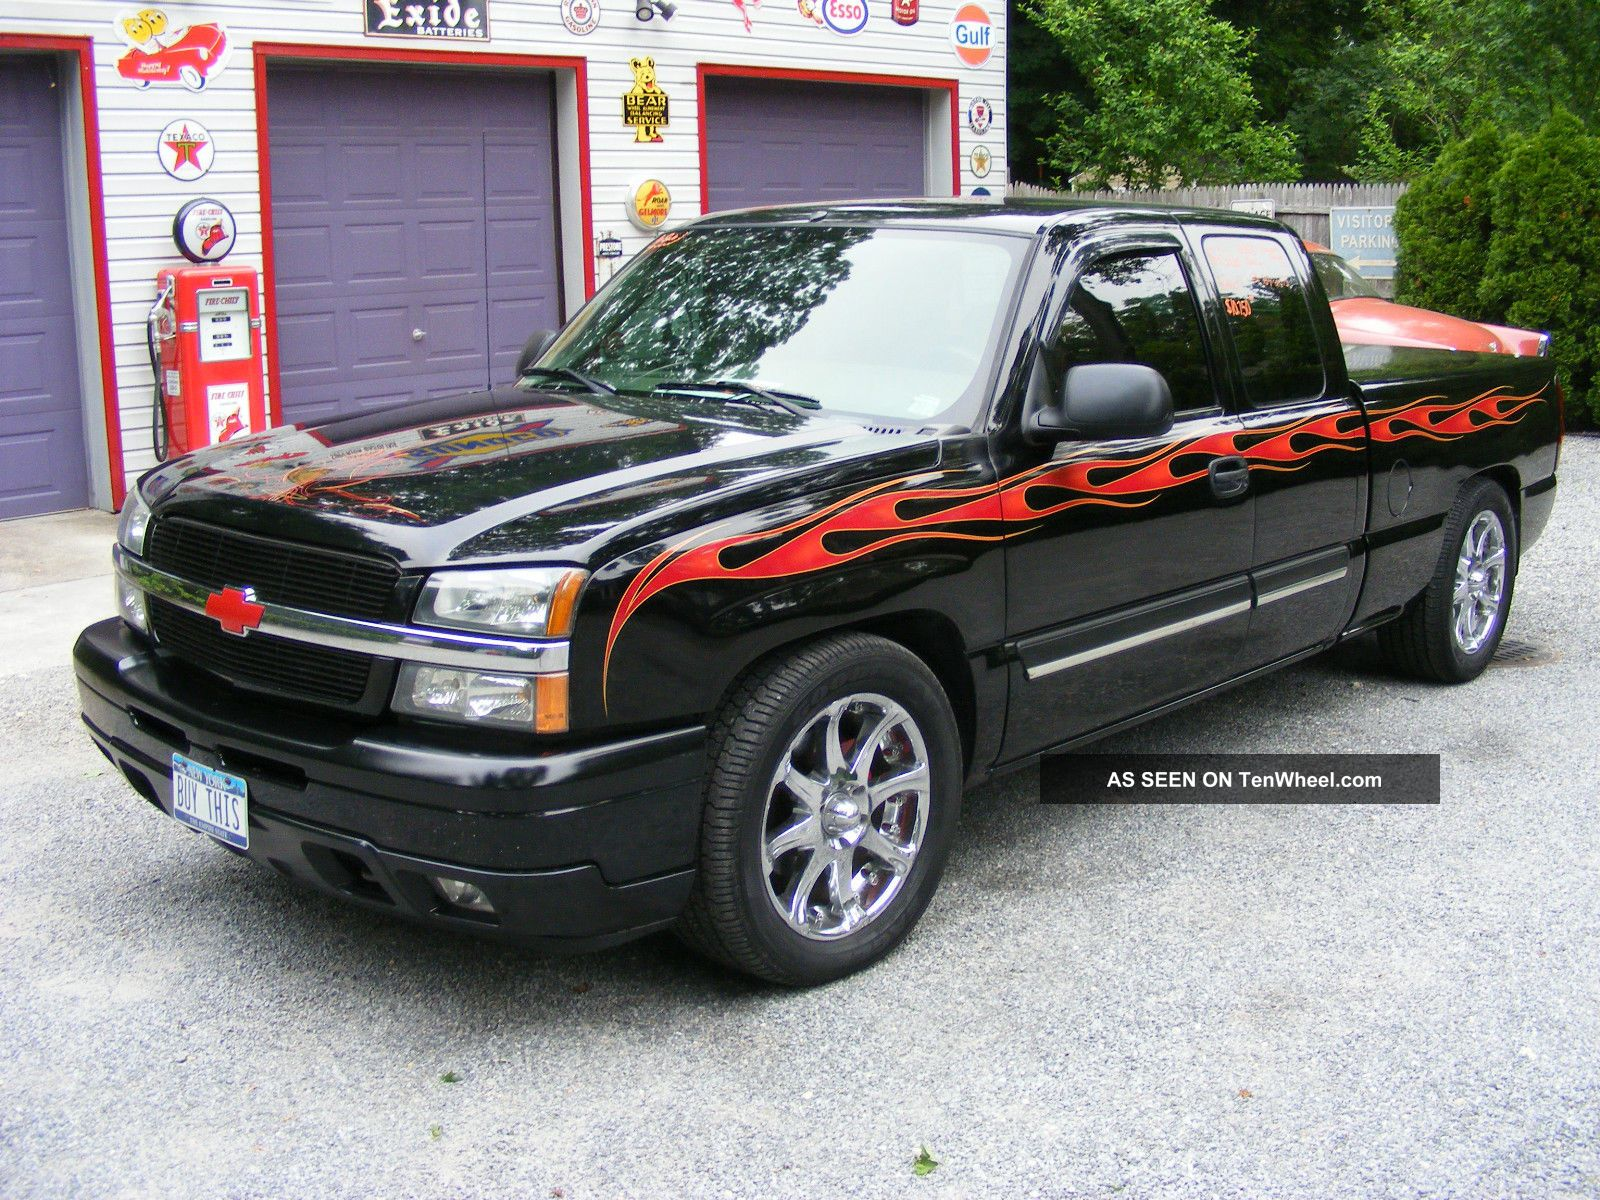 2005 chevrolet silverado 1500 lt extended cab pickup hotrod custom. Black Bedroom Furniture Sets. Home Design Ideas